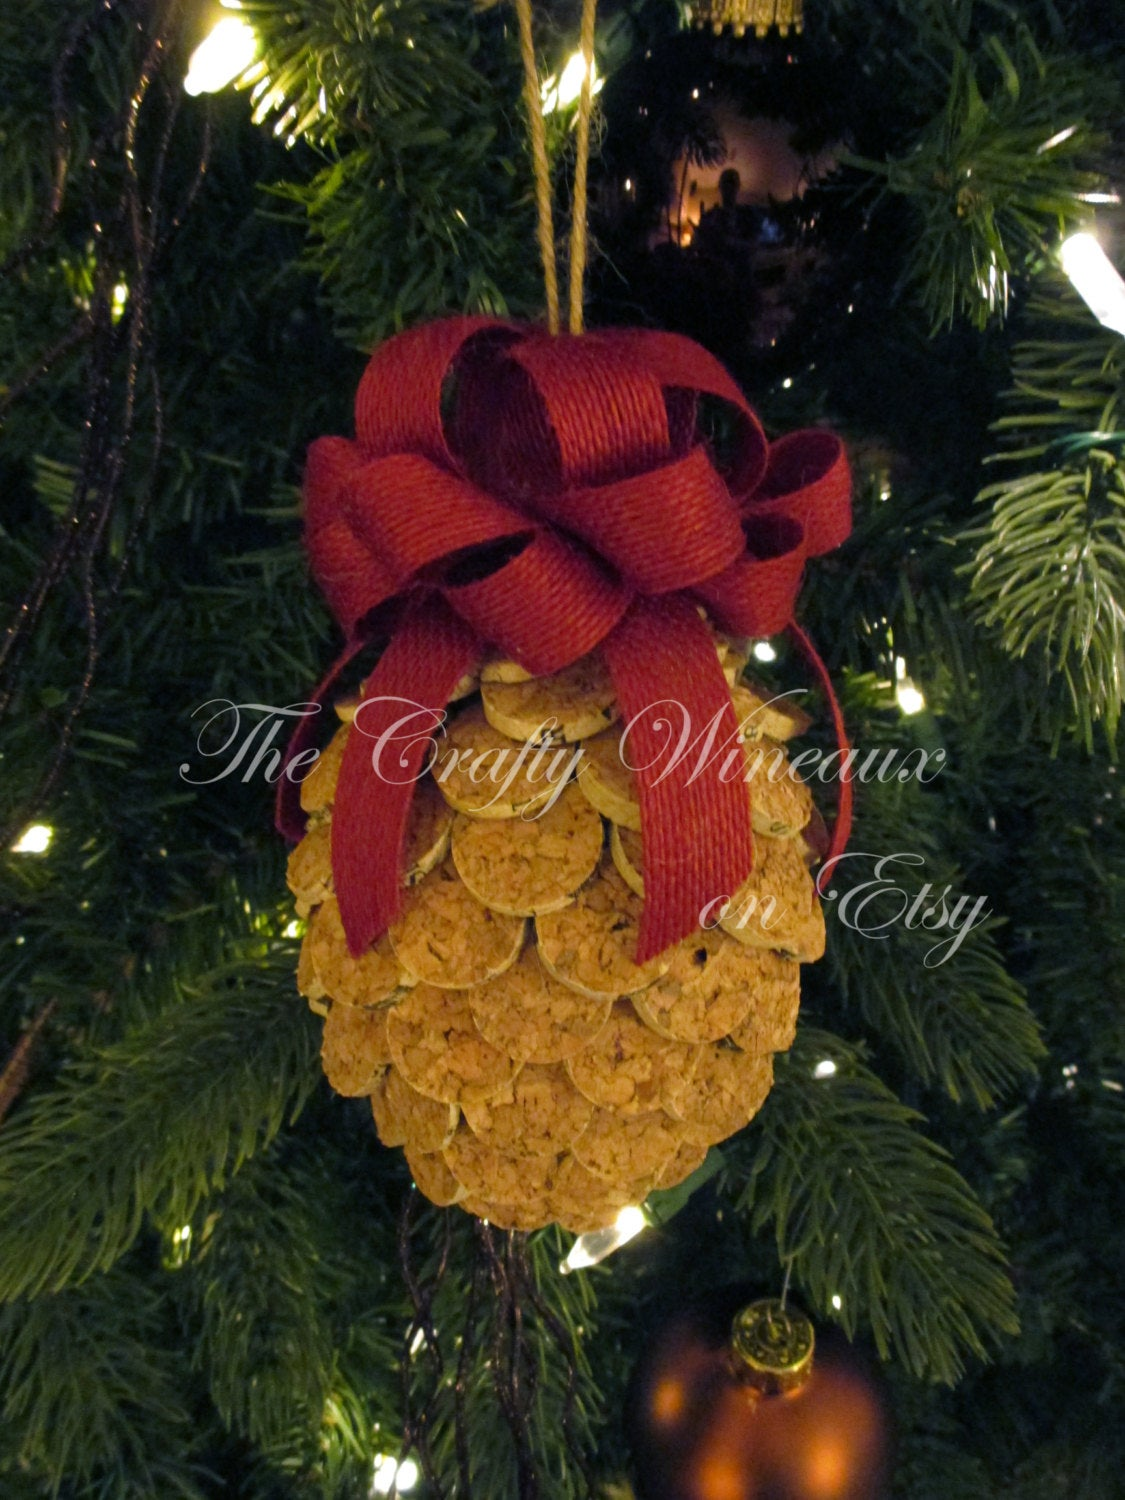 Poinsettia Red Bow Wine Cork Pine Cone Christmas Ornament Pineapple Ornaments 100 Recycled Wine Corks Twine Burlap Ribbon The Crafty Wineaux